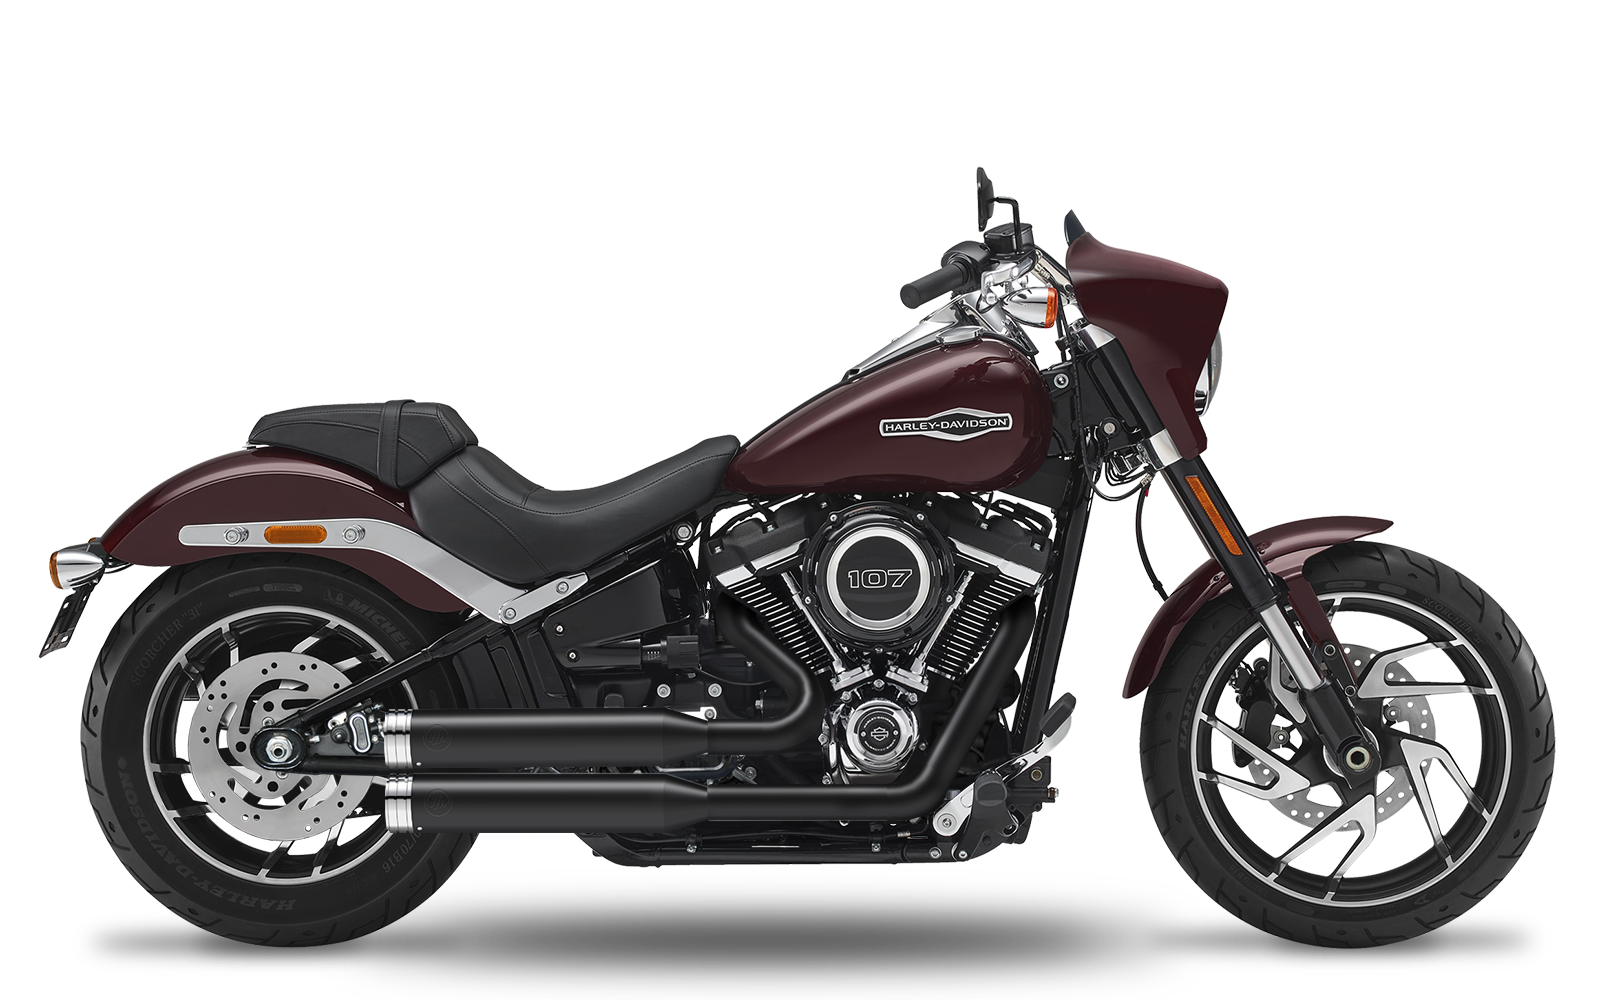 Softail - Sport Glide - ME107 - 2018-2020 - Complete systems adjustable